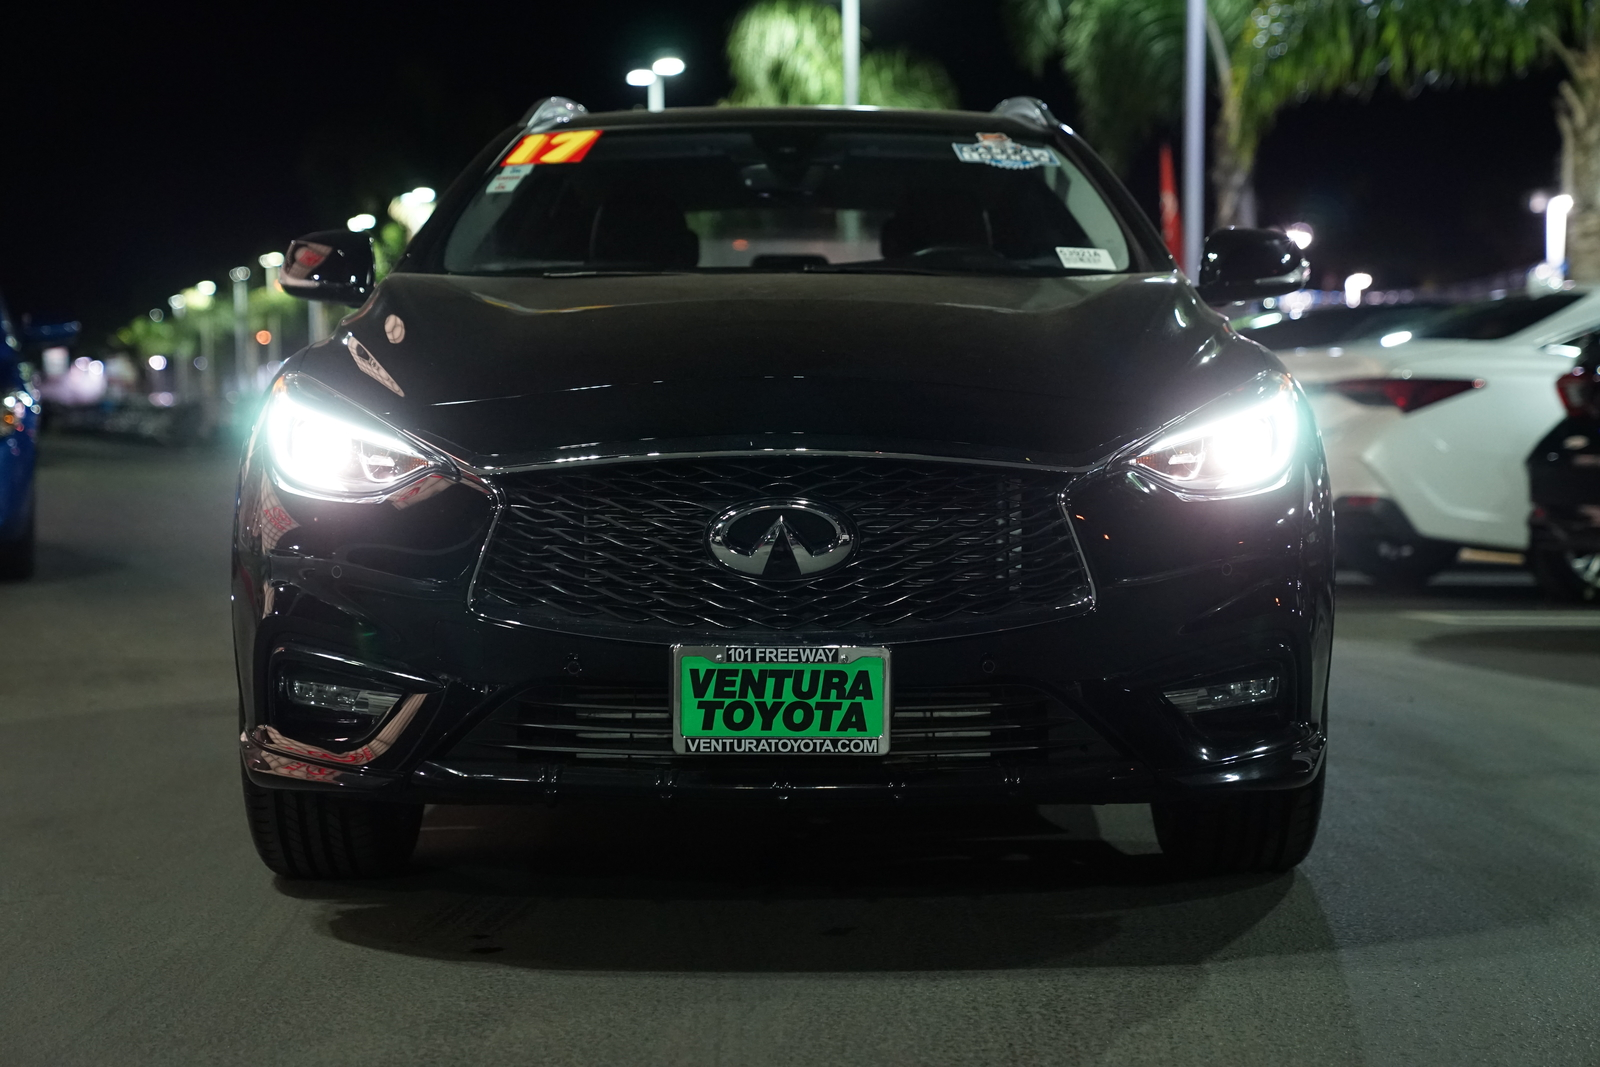 Pre-Owned 2017 INFINITI QX30 FWD